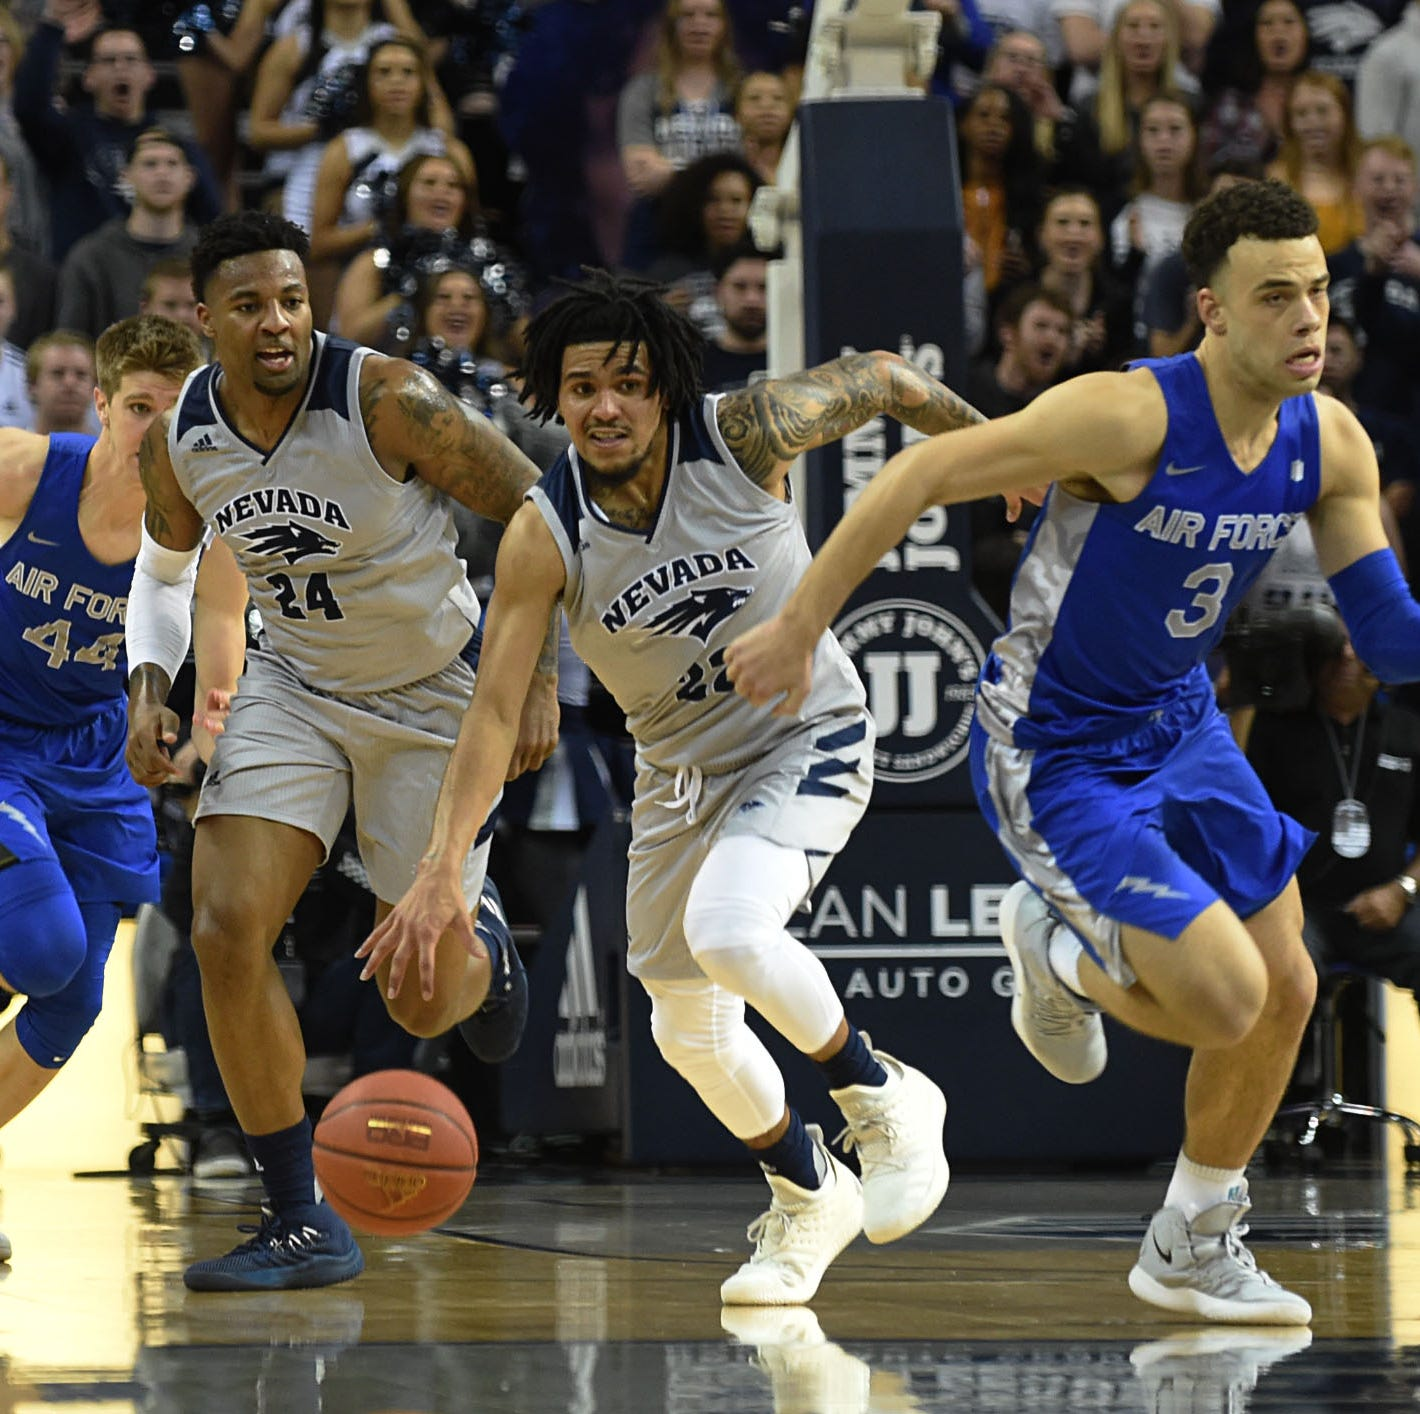 Nevada basketball jumps up to seventh in AP Top 25 national poll